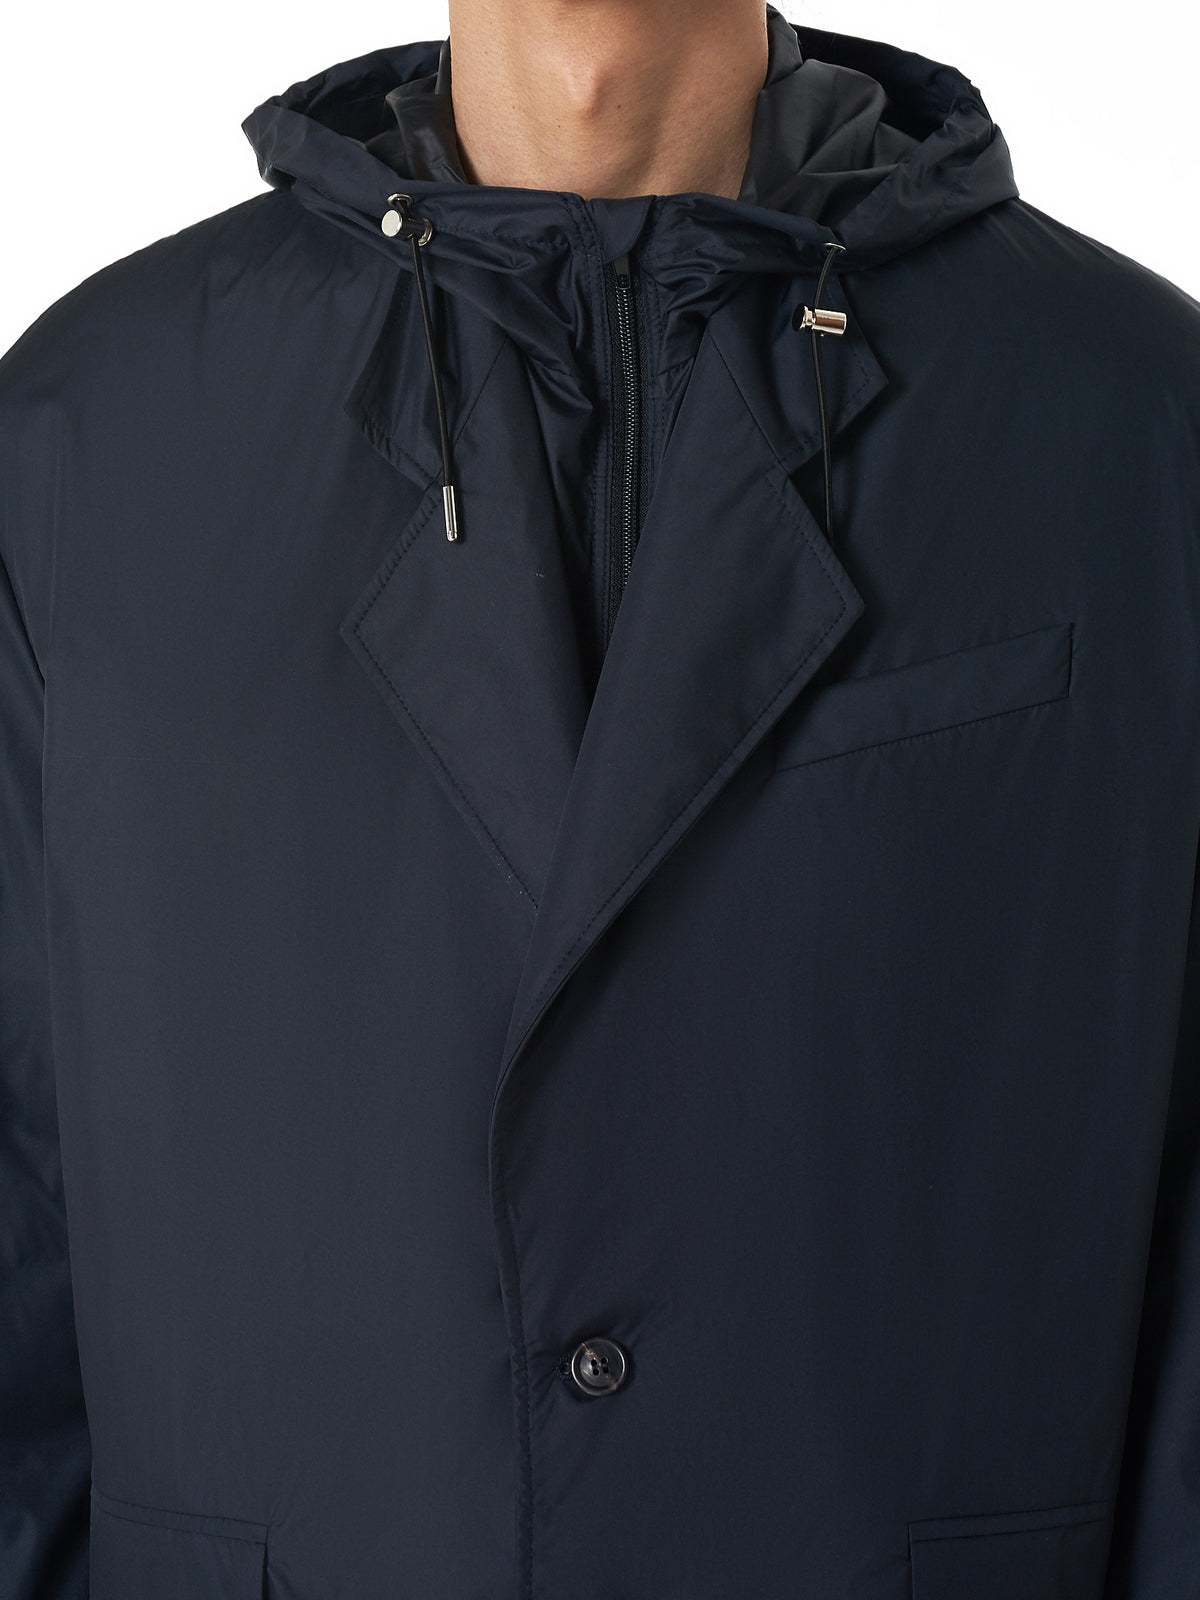 Y/Project Blazer - Hlorenzo Detail 2